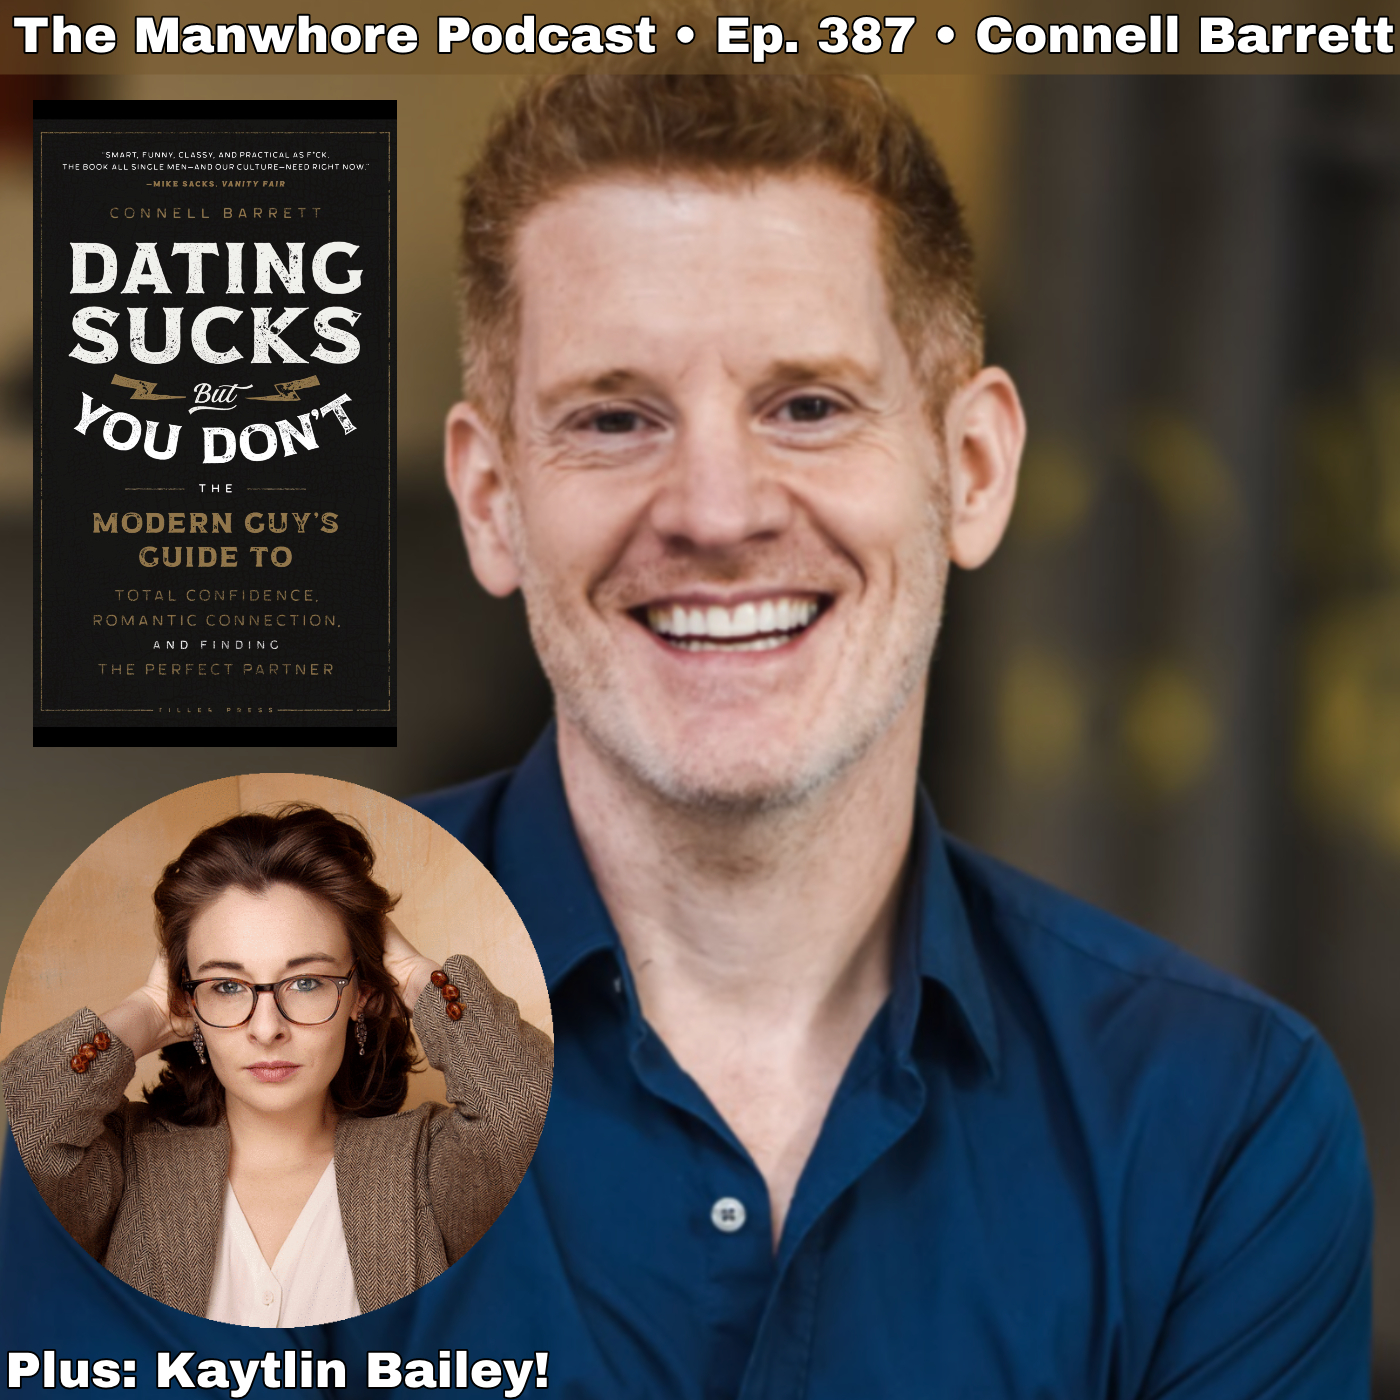 The Manwhore Podcast: A Sex-Positive Quest - Ep. 387: Abandoning Pickup Artistry for Authenticity with Dating Coach Connell Barrett // A Whore's Eye View with Kaytlin Bailey